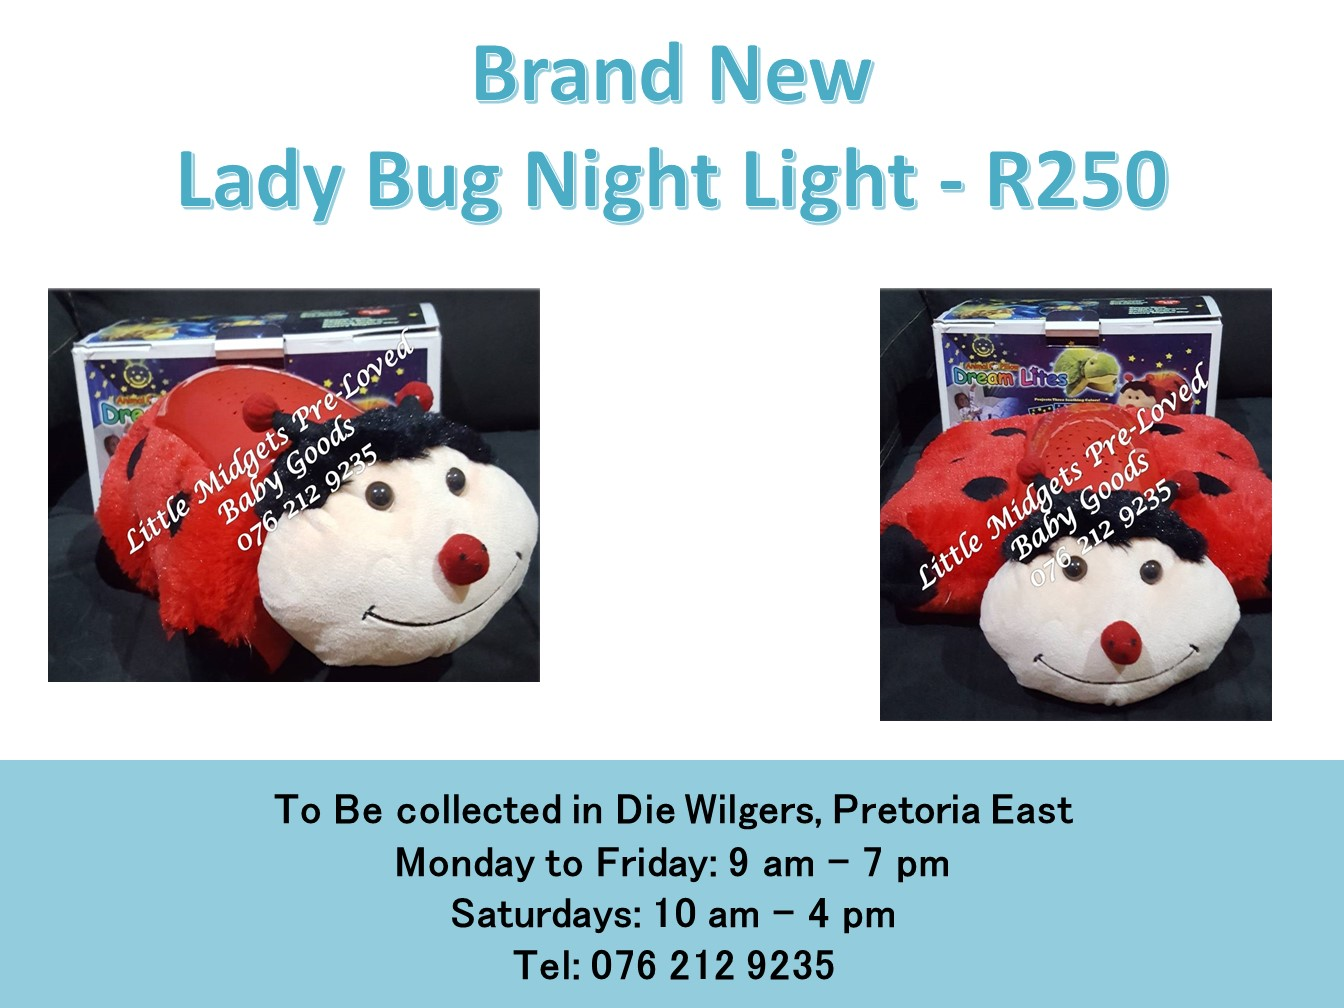 Brand New Lady Bug Night Light